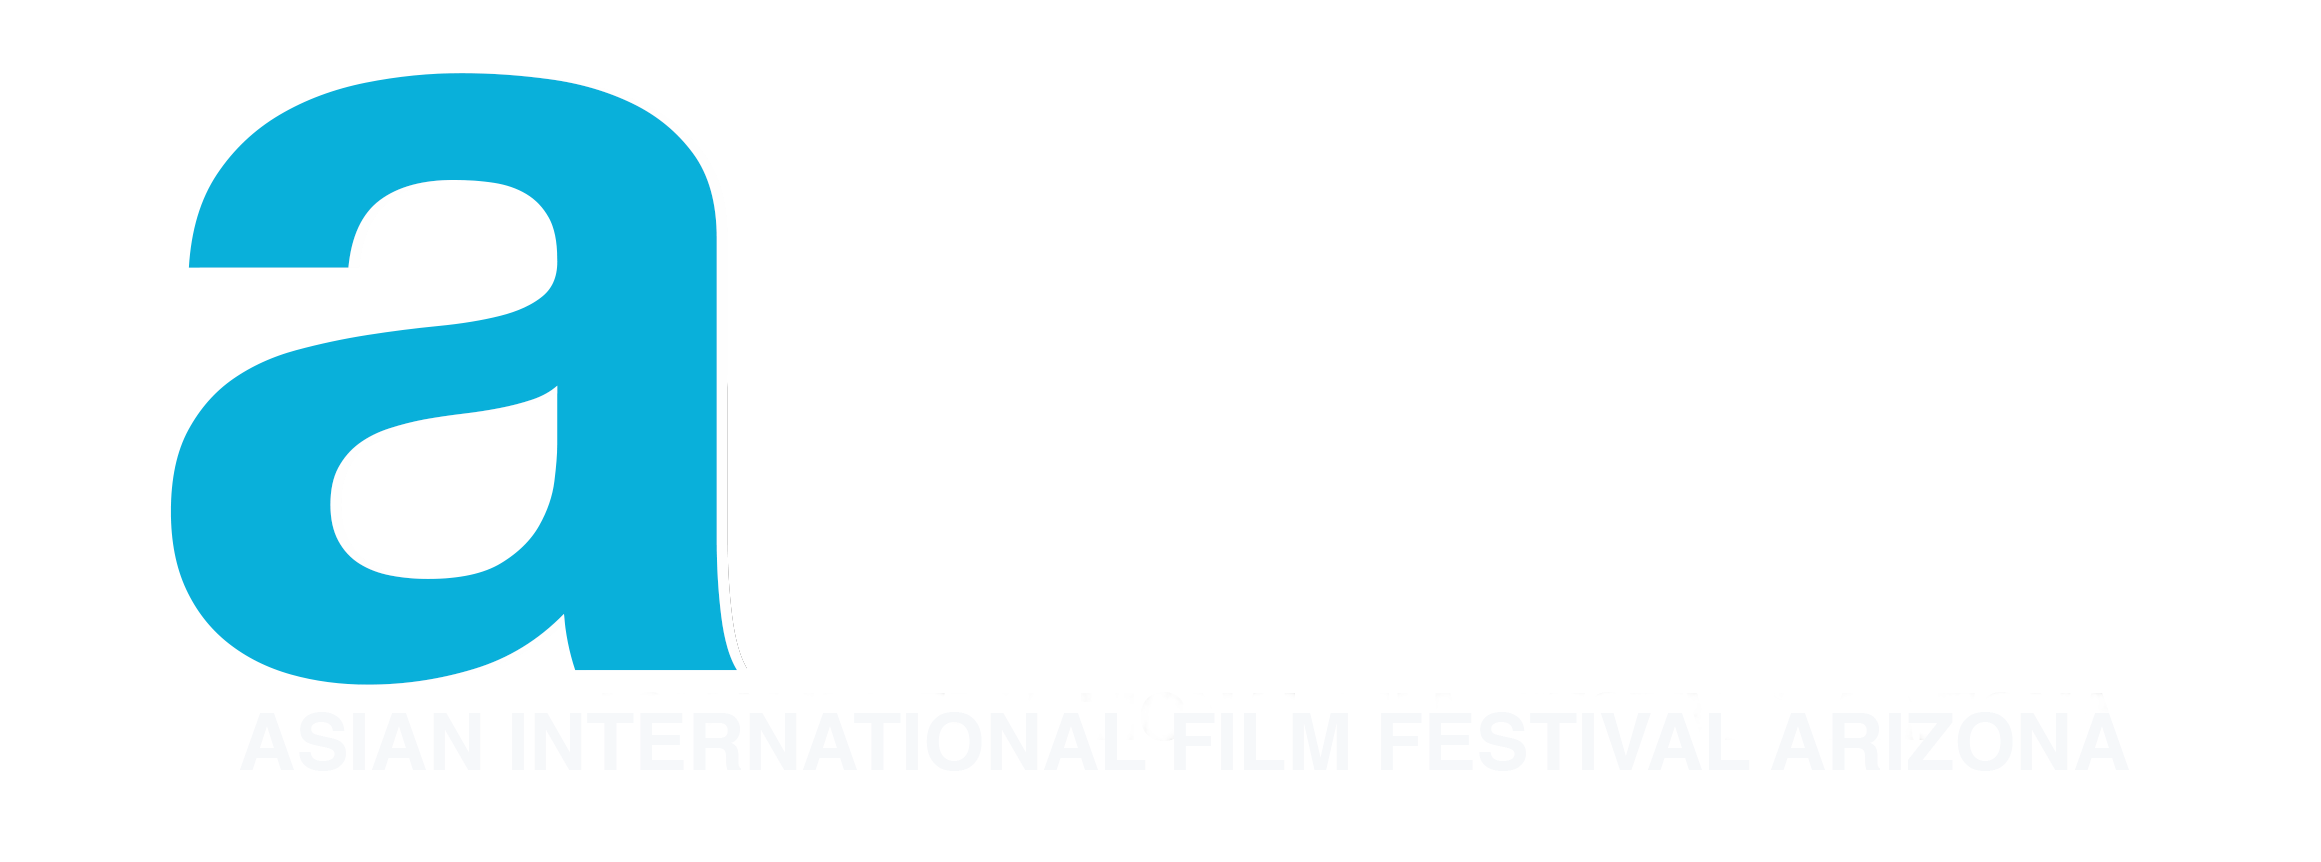 Asian International Film Festival Arizona